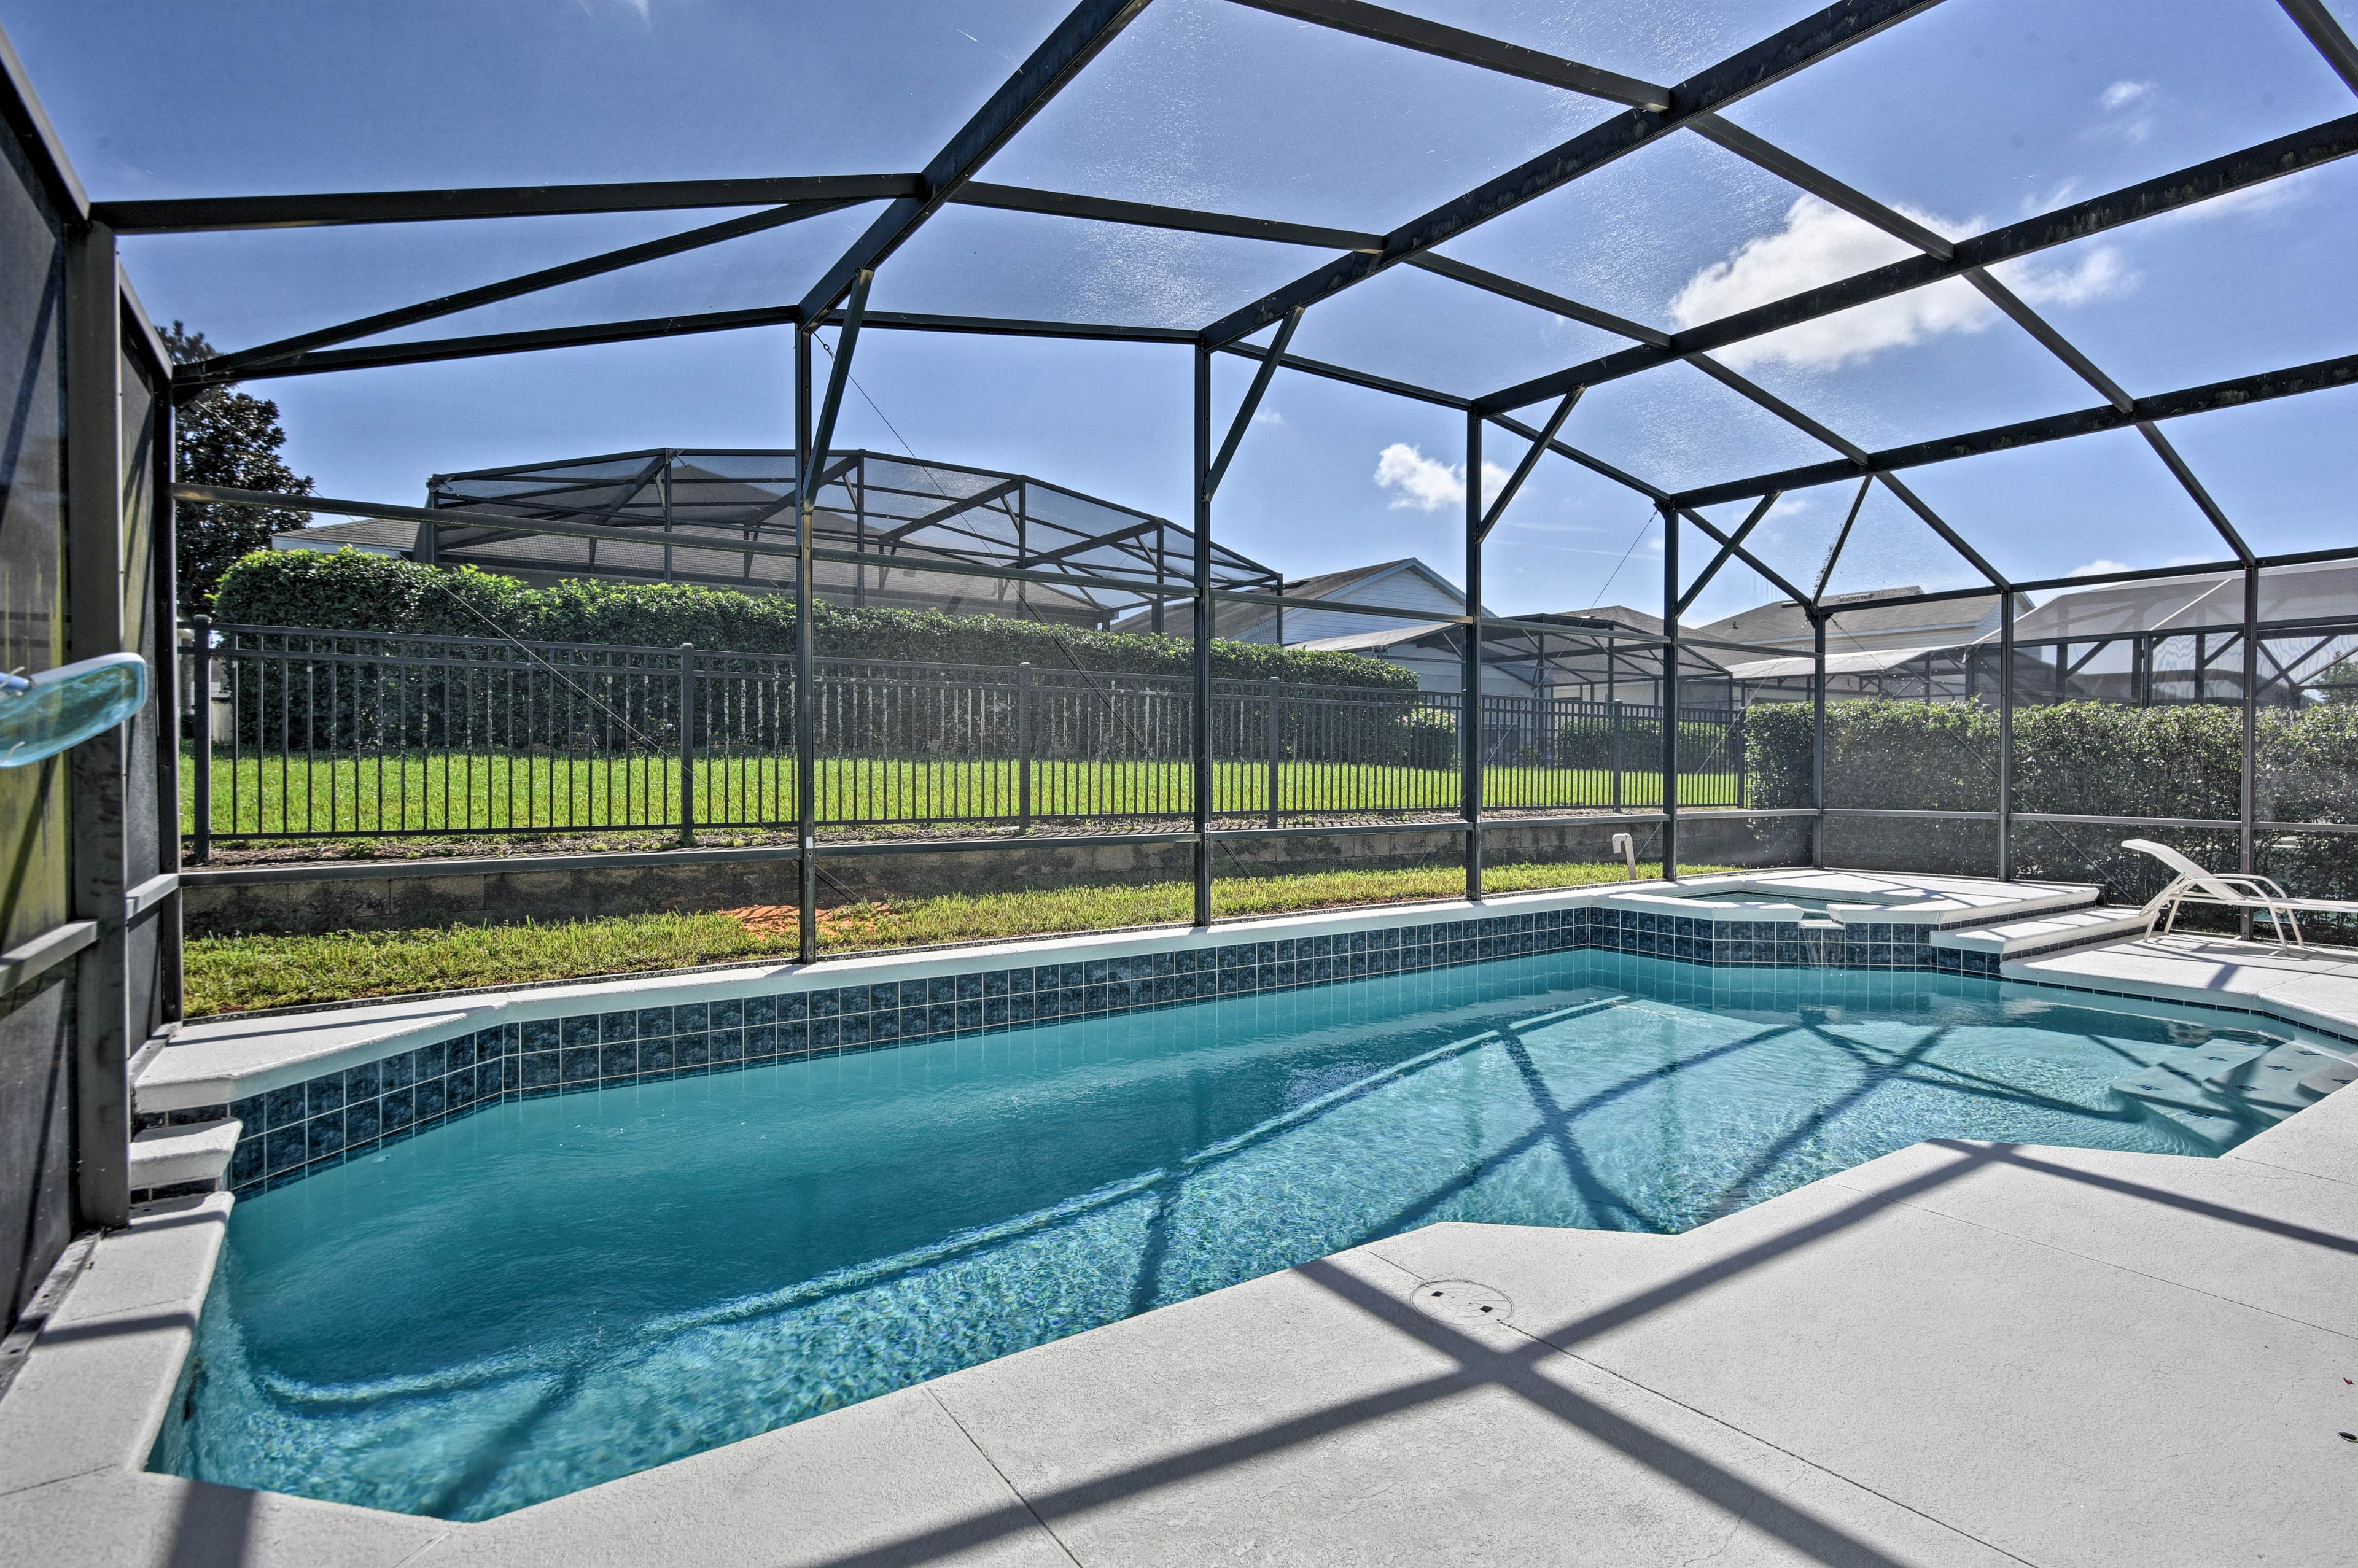 Take refreshing swims in the heated pool.